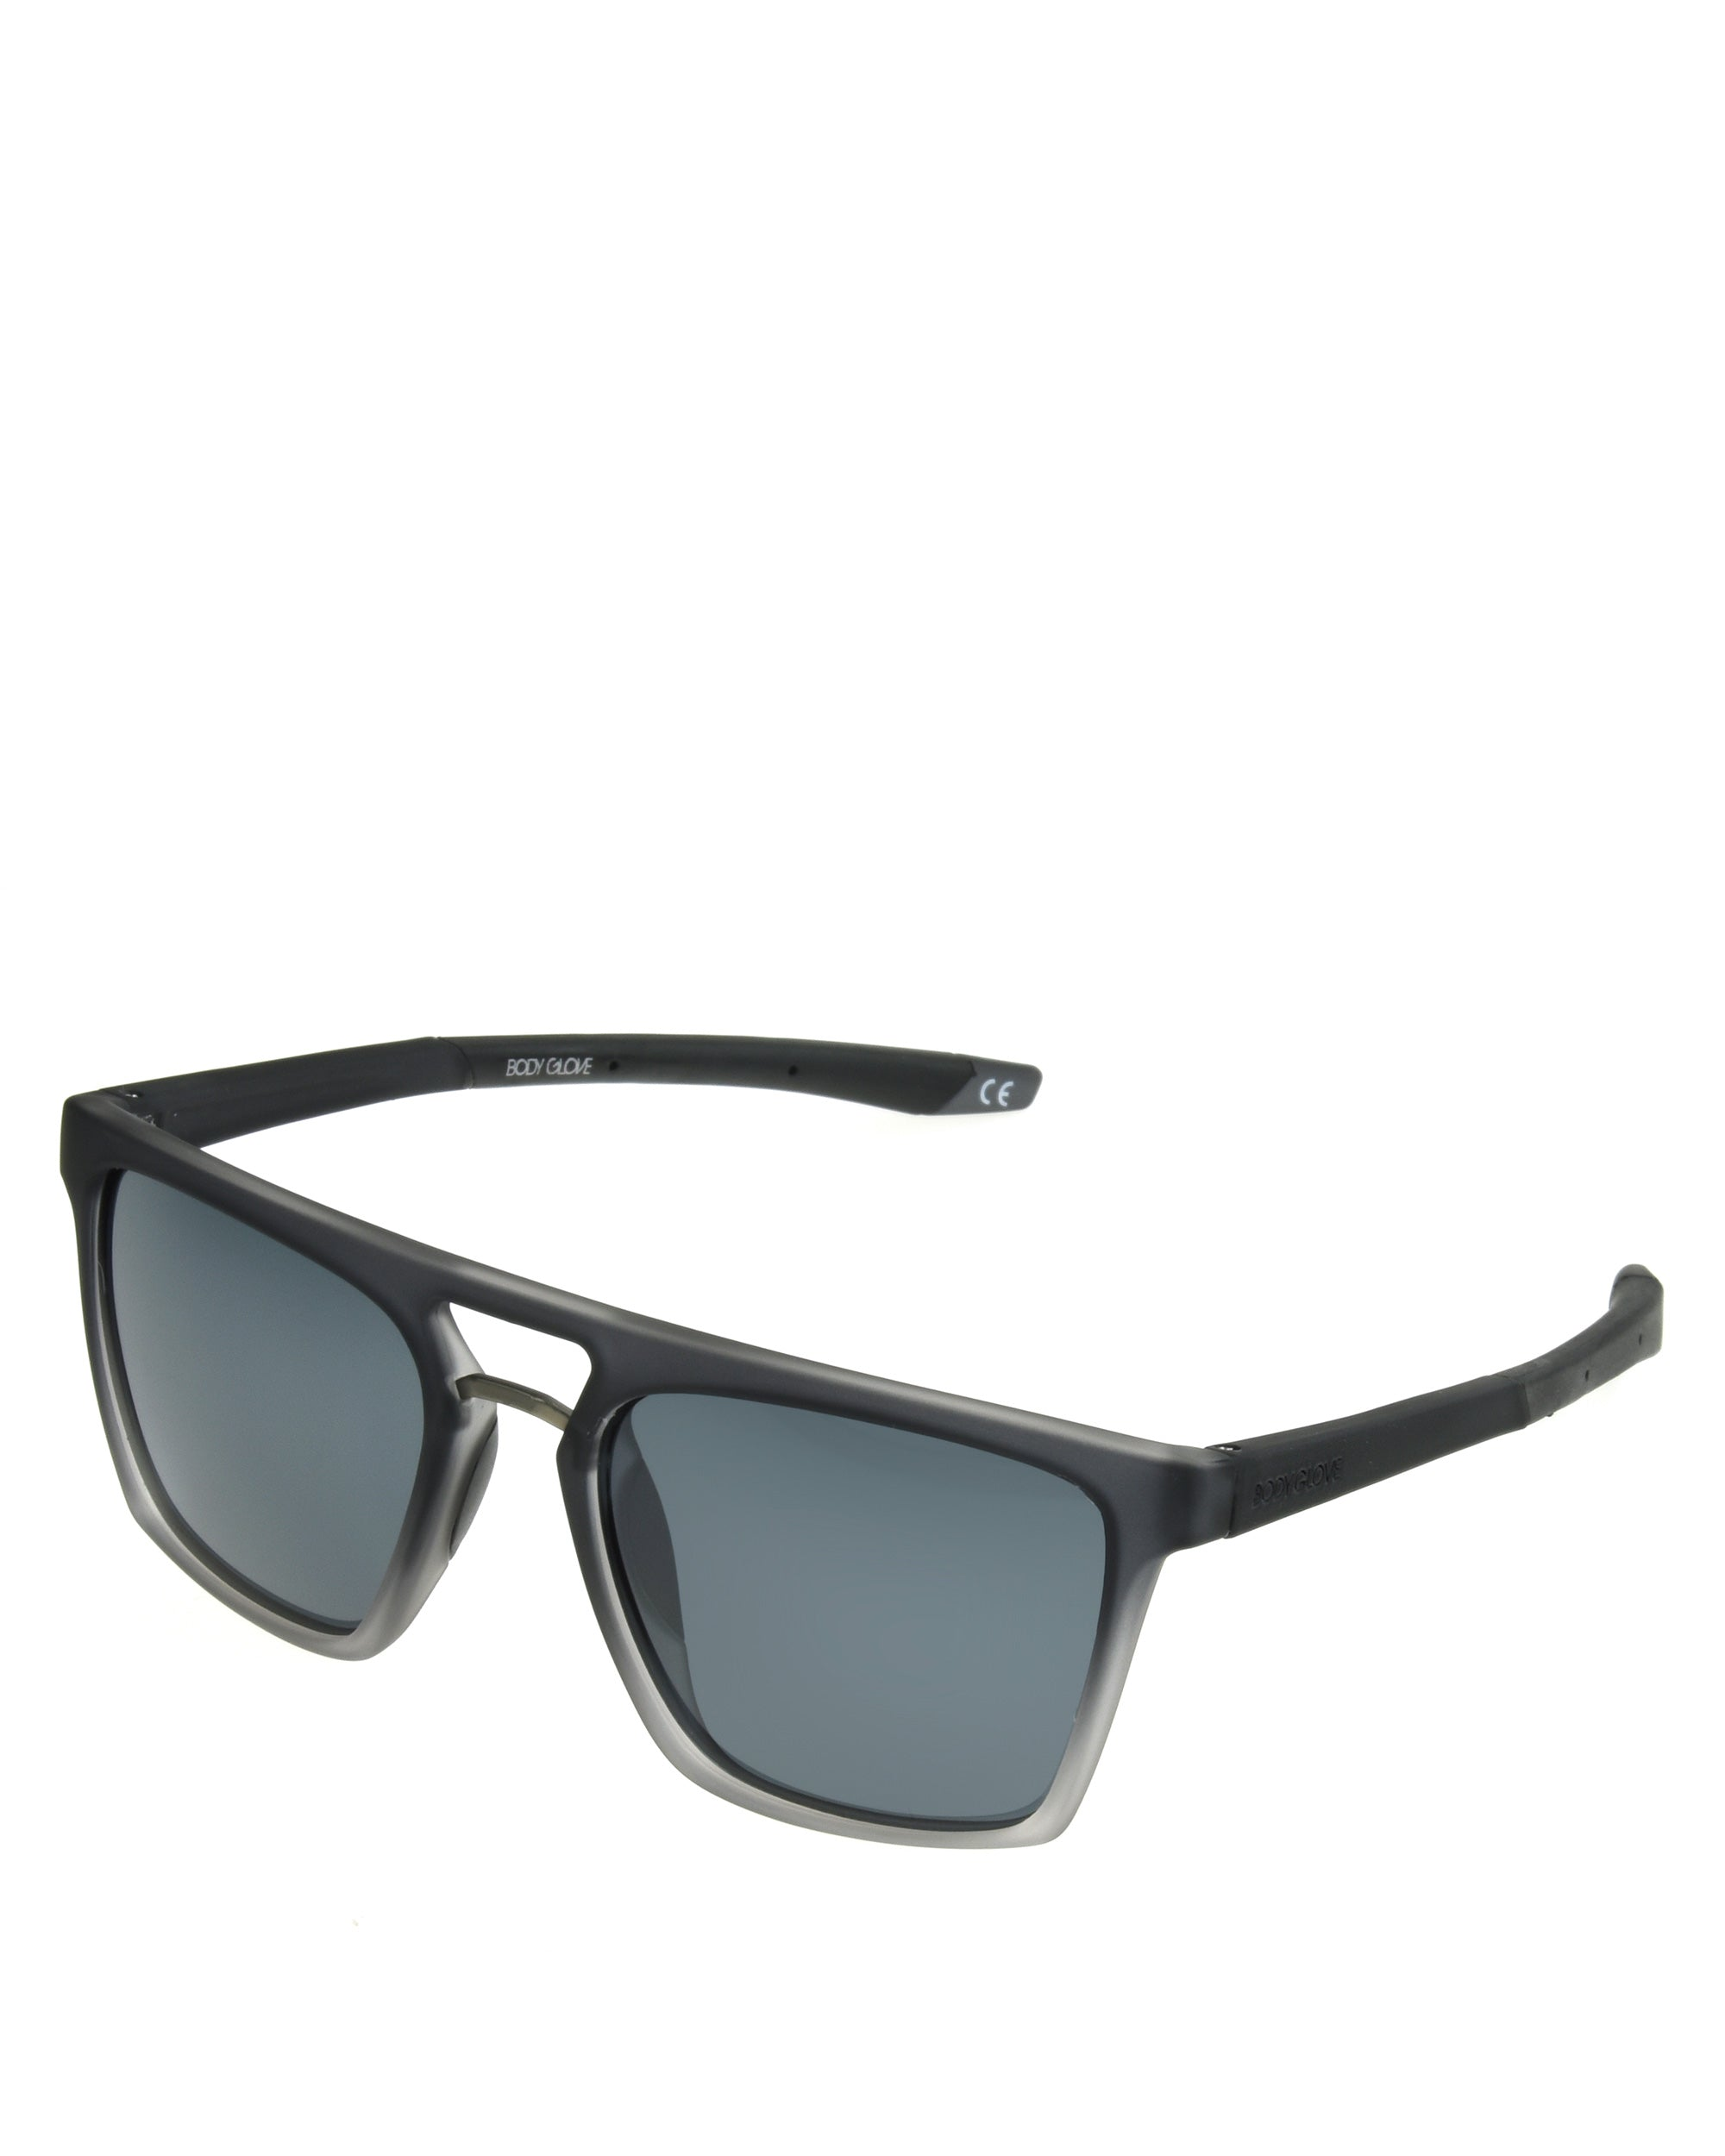 Men's BG1805 Polarized Sunglasses - Grey